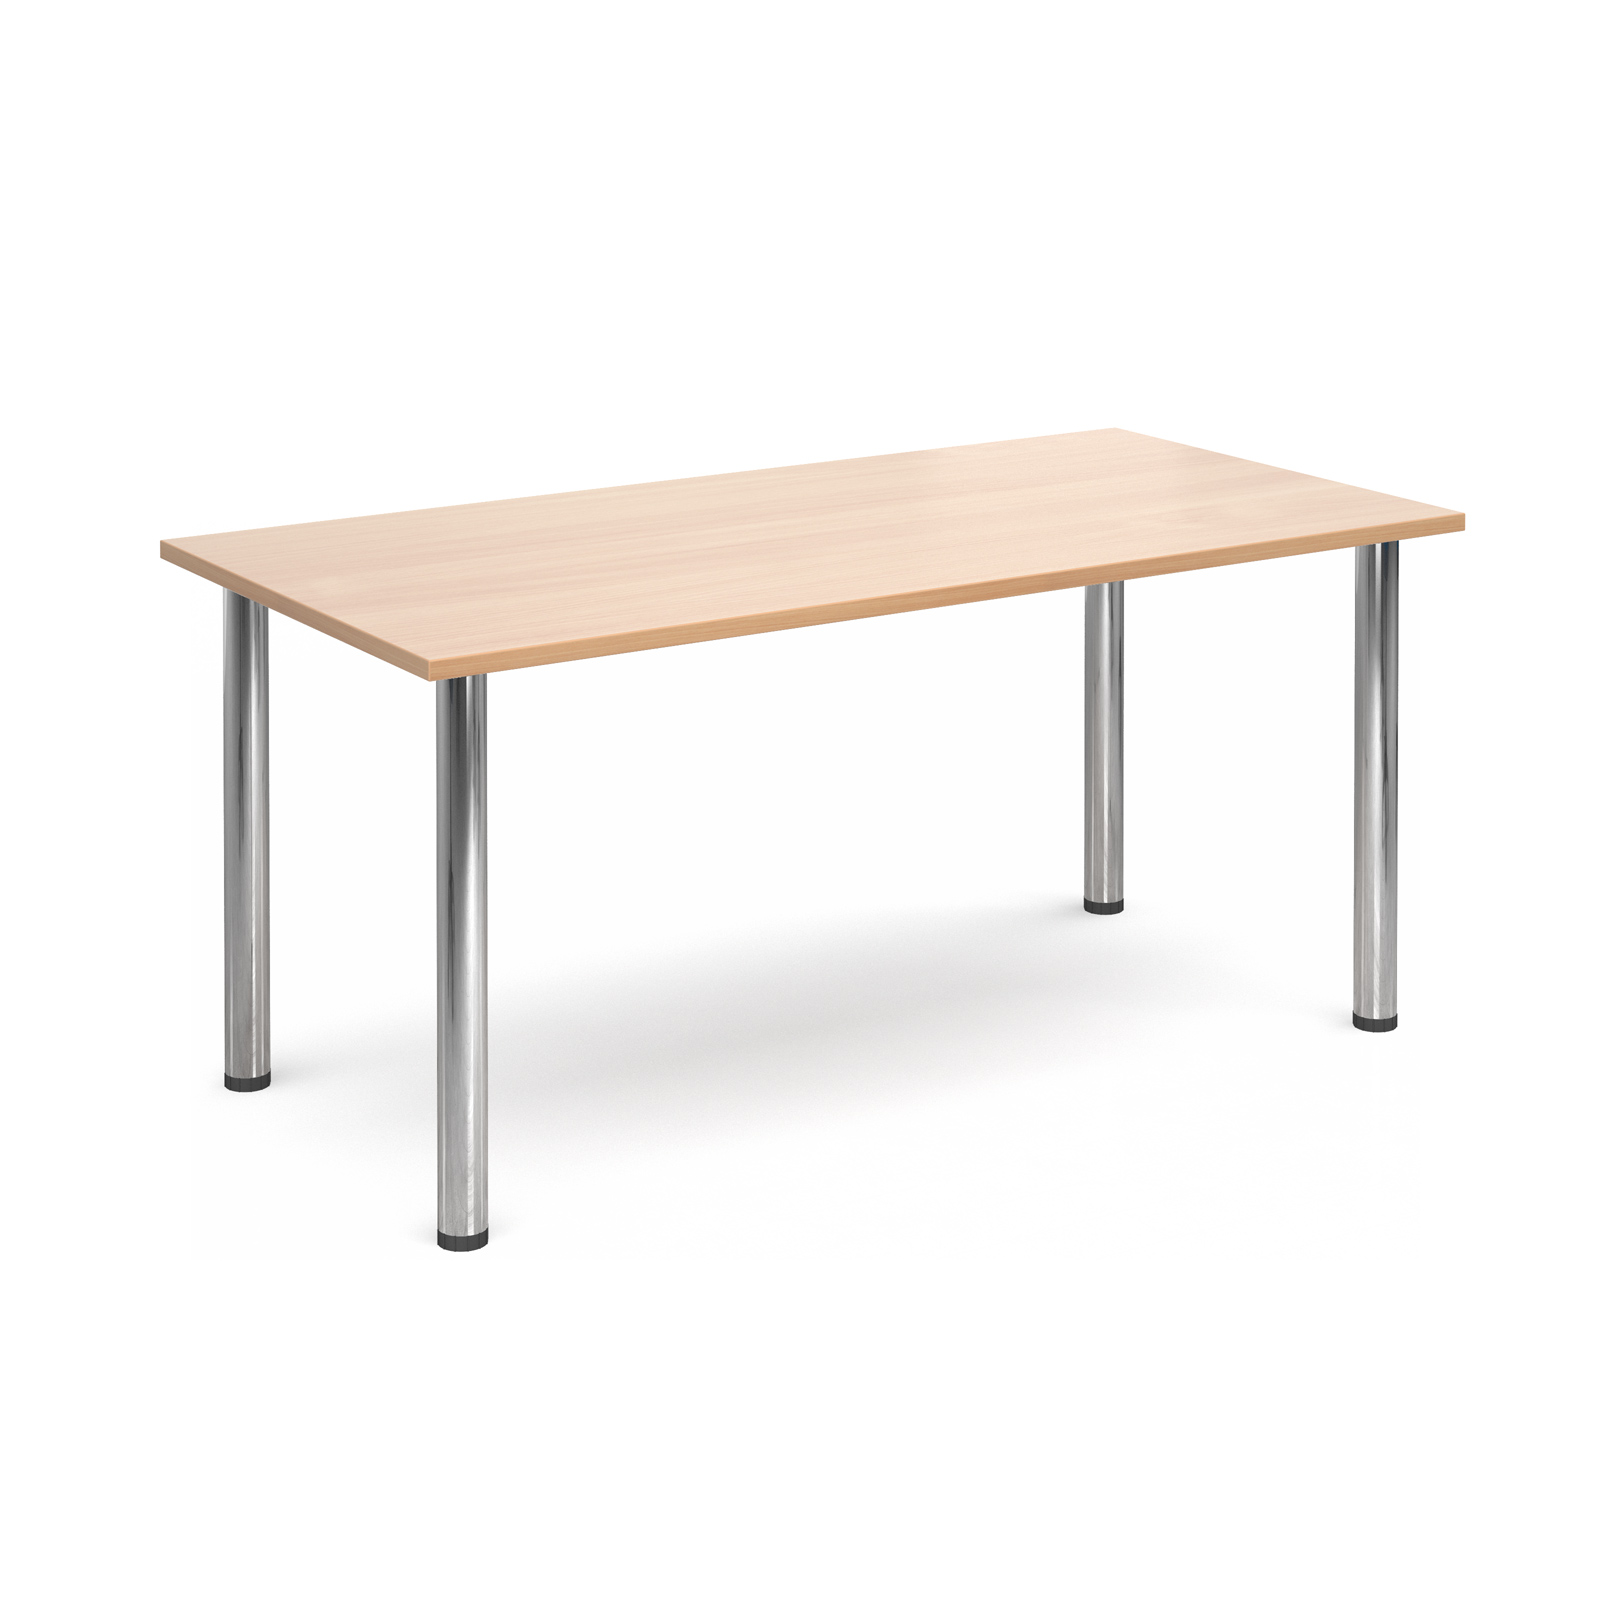 1600 Flexi table Chrome radial Legs-Beech